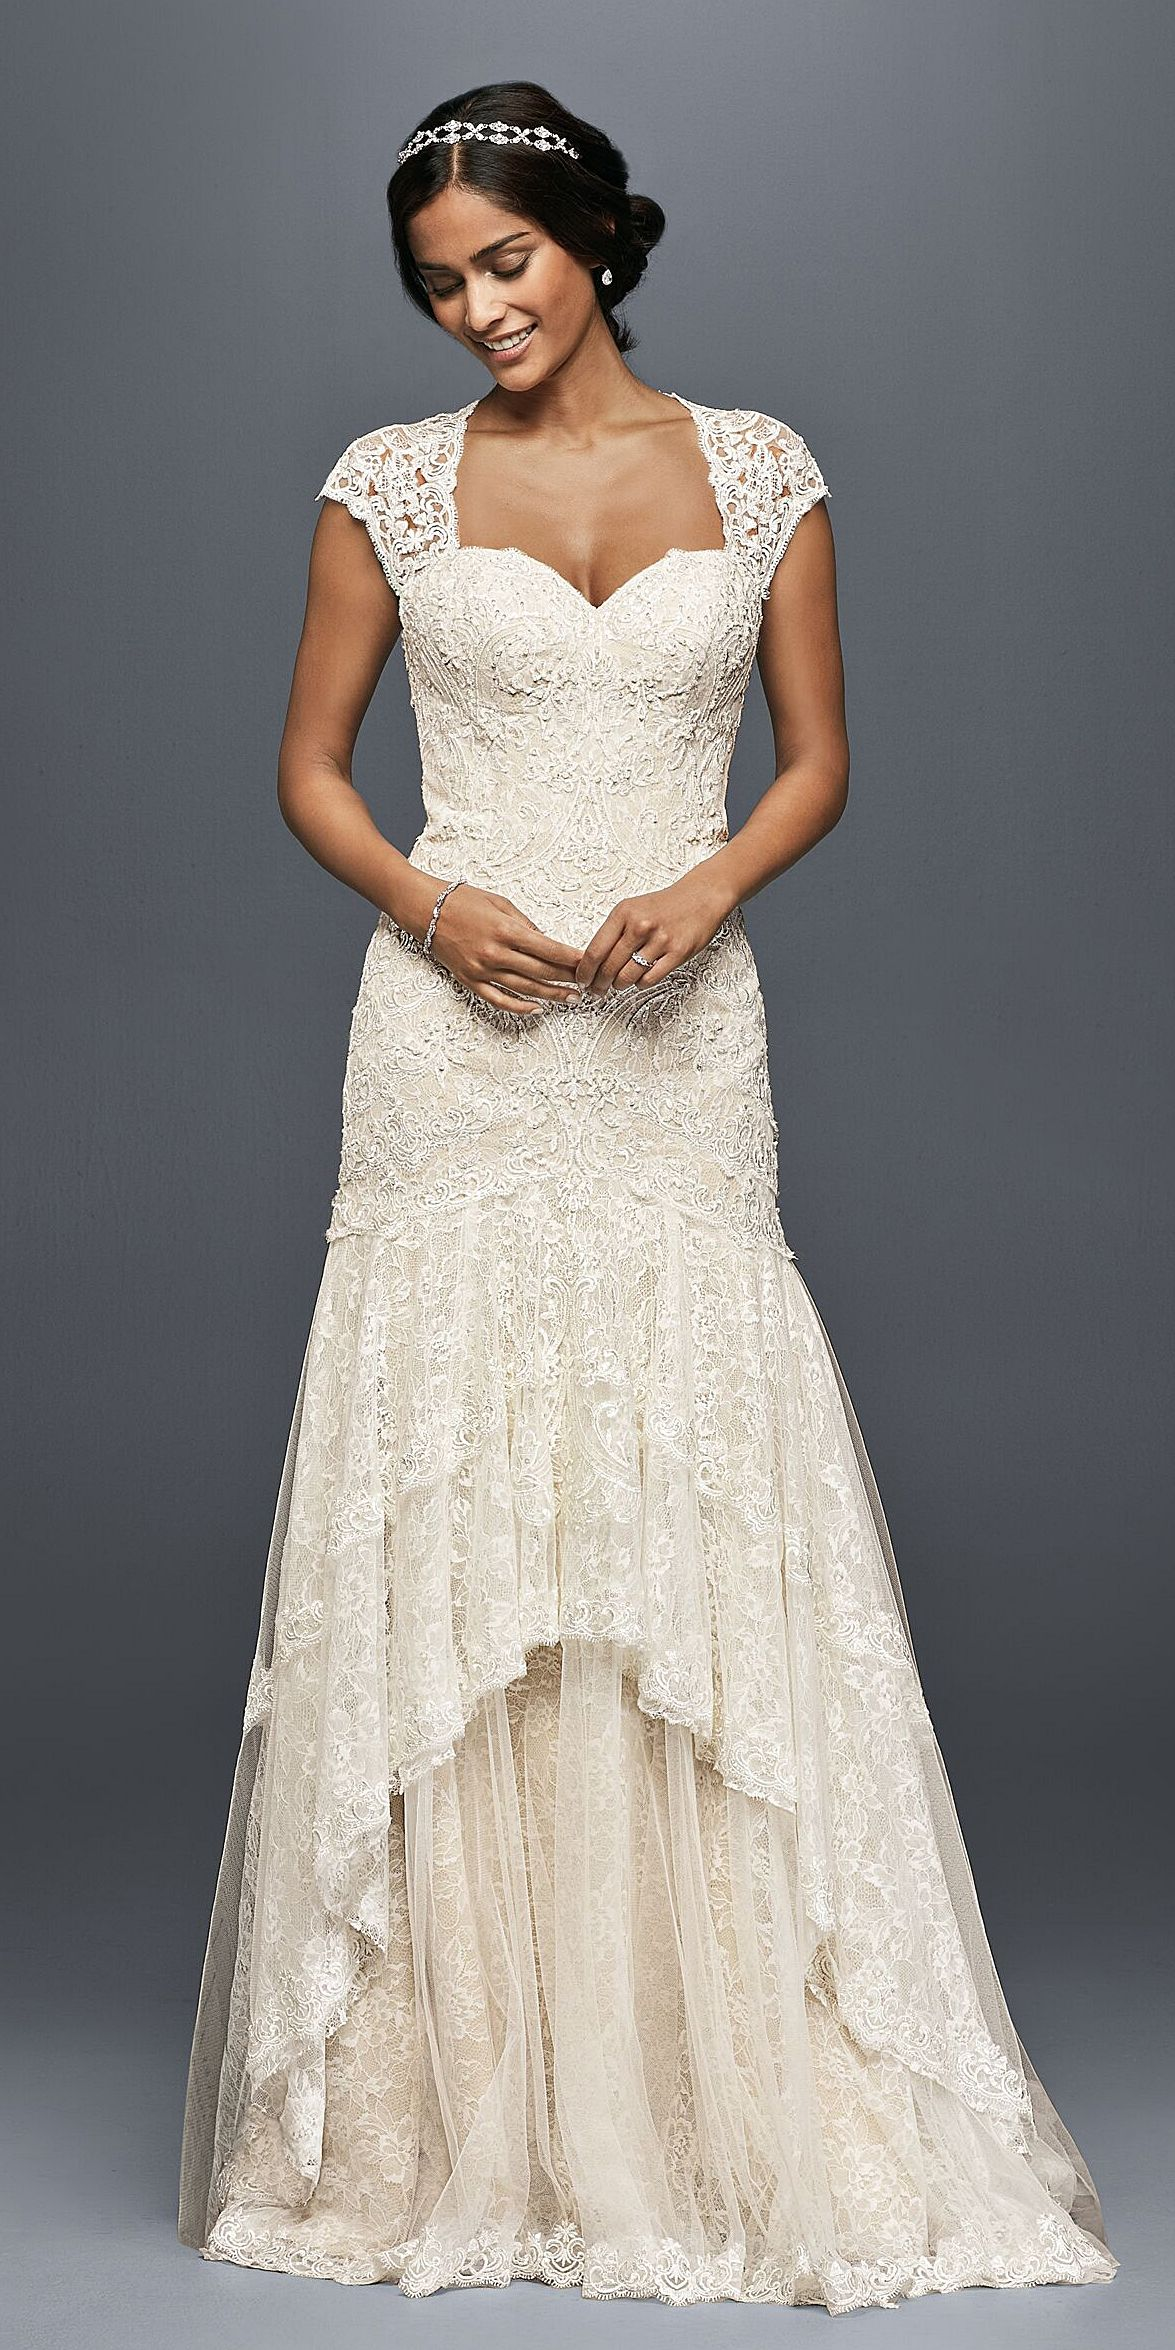 Tiered Lace Mermaid Wedding Dress with Beading David's